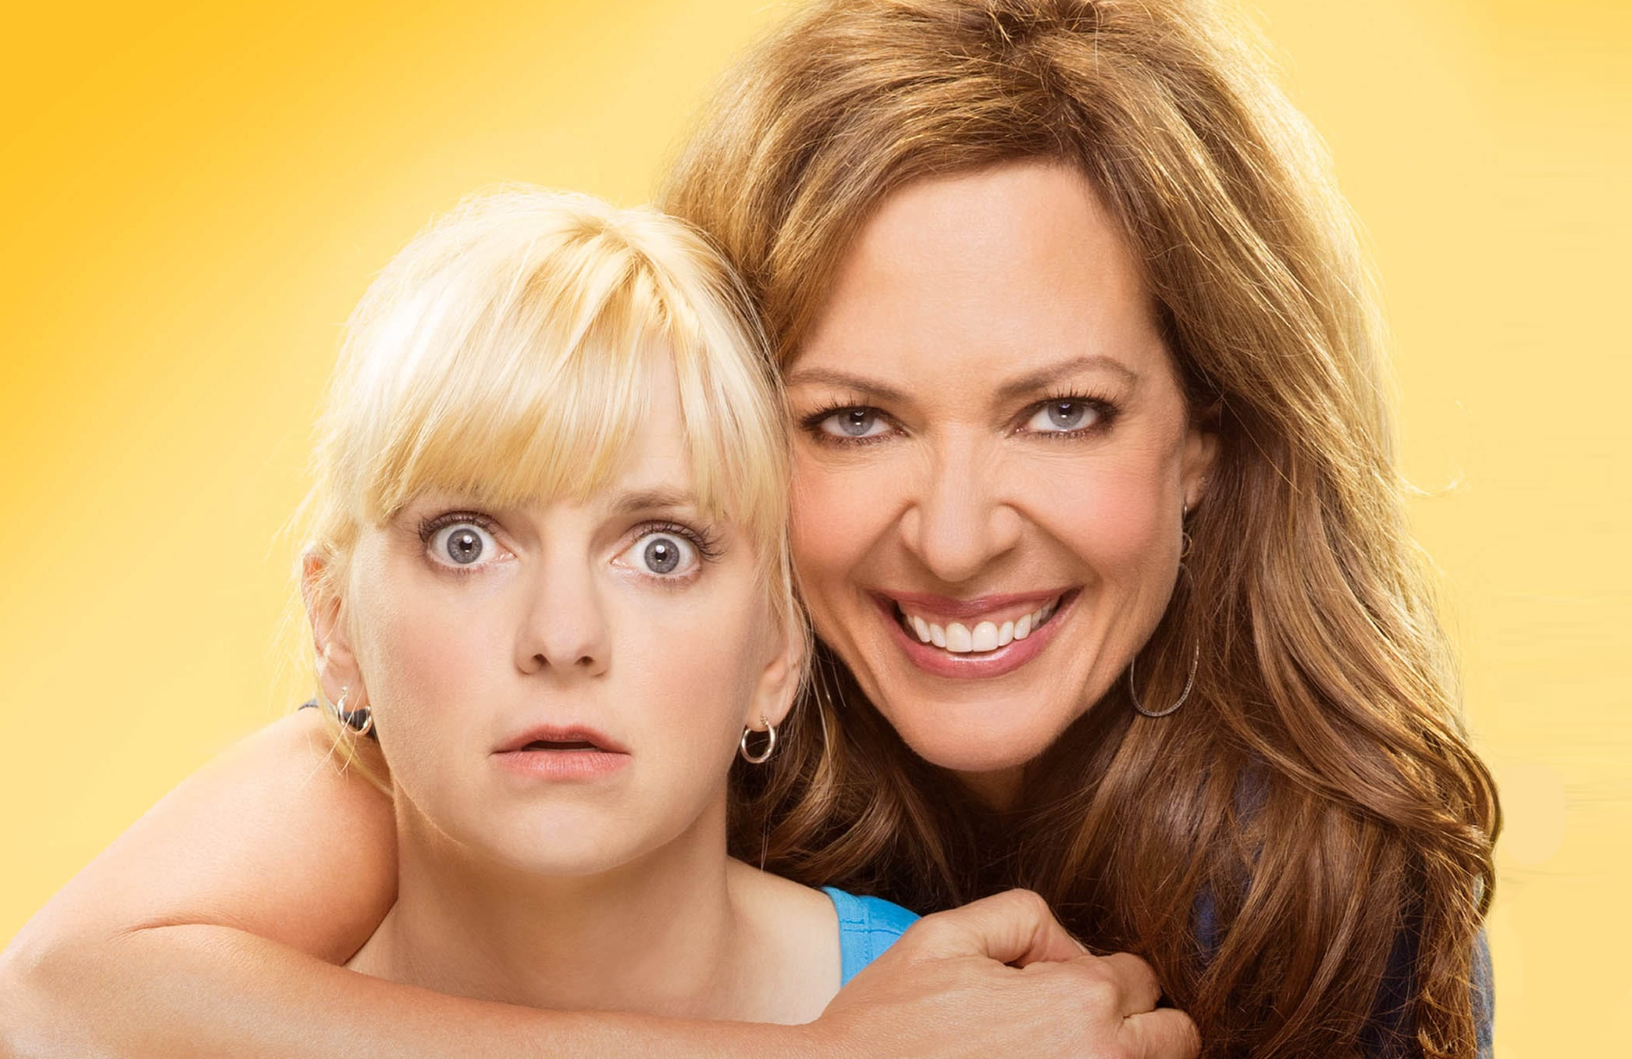 Anna Faris and Allison Janney in Mom. (CBS)